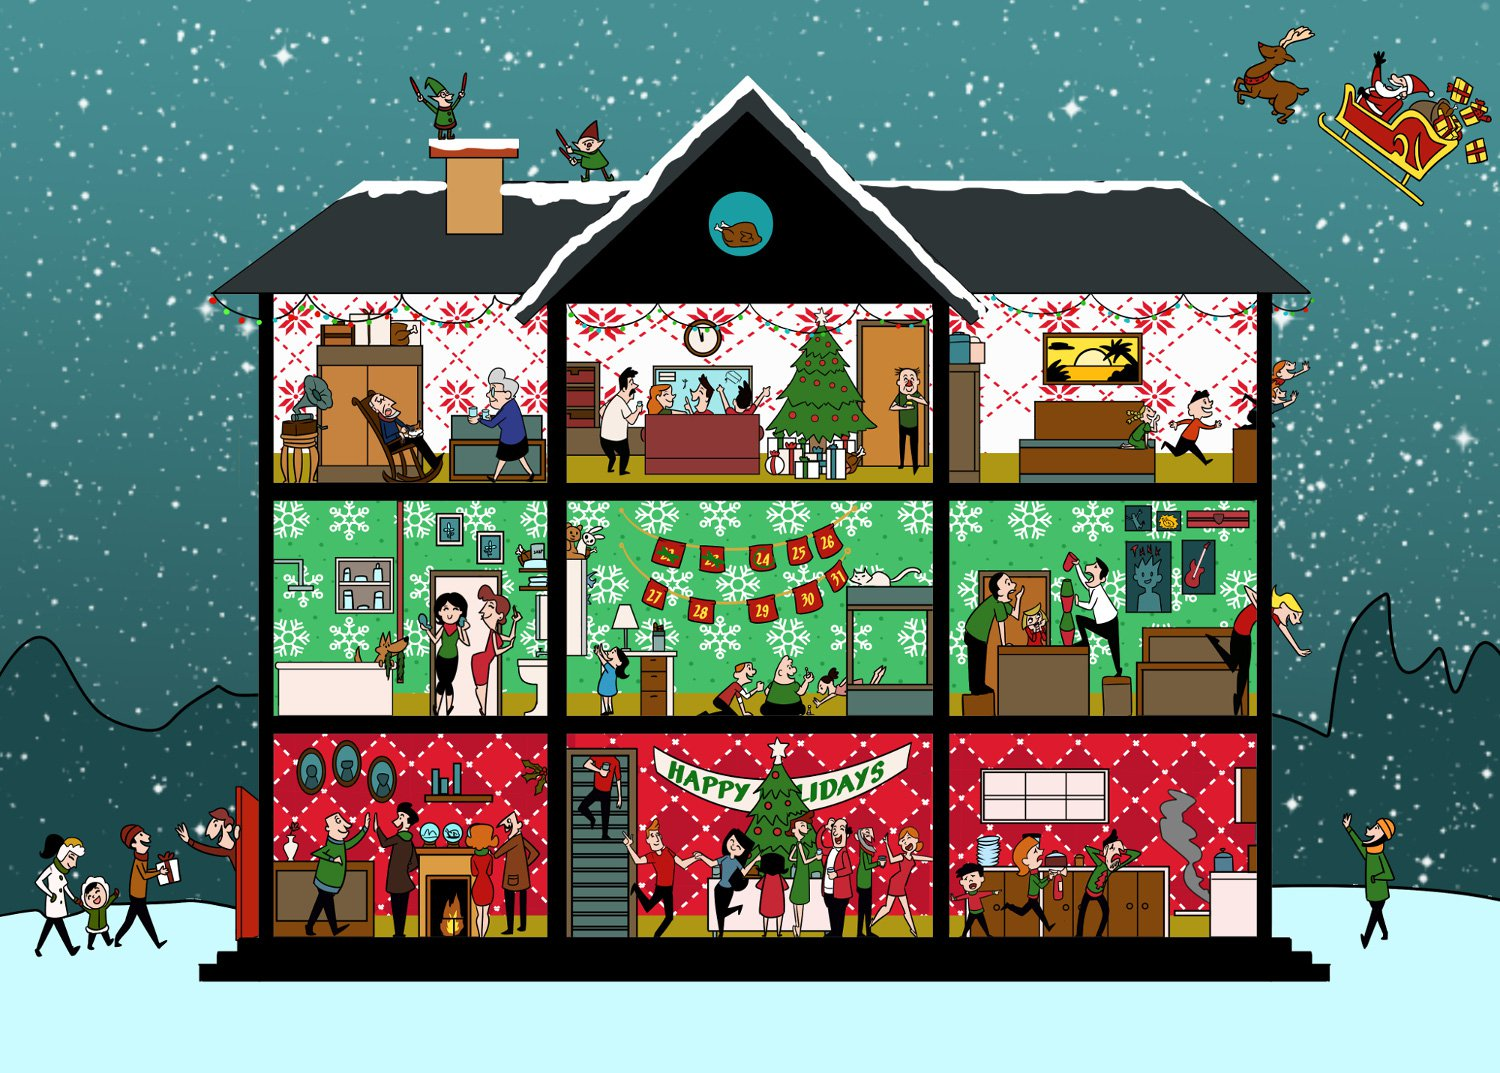 Picture: Christmas Brainteaser Can you find the 5 hidden turkeys in this festive party scene?